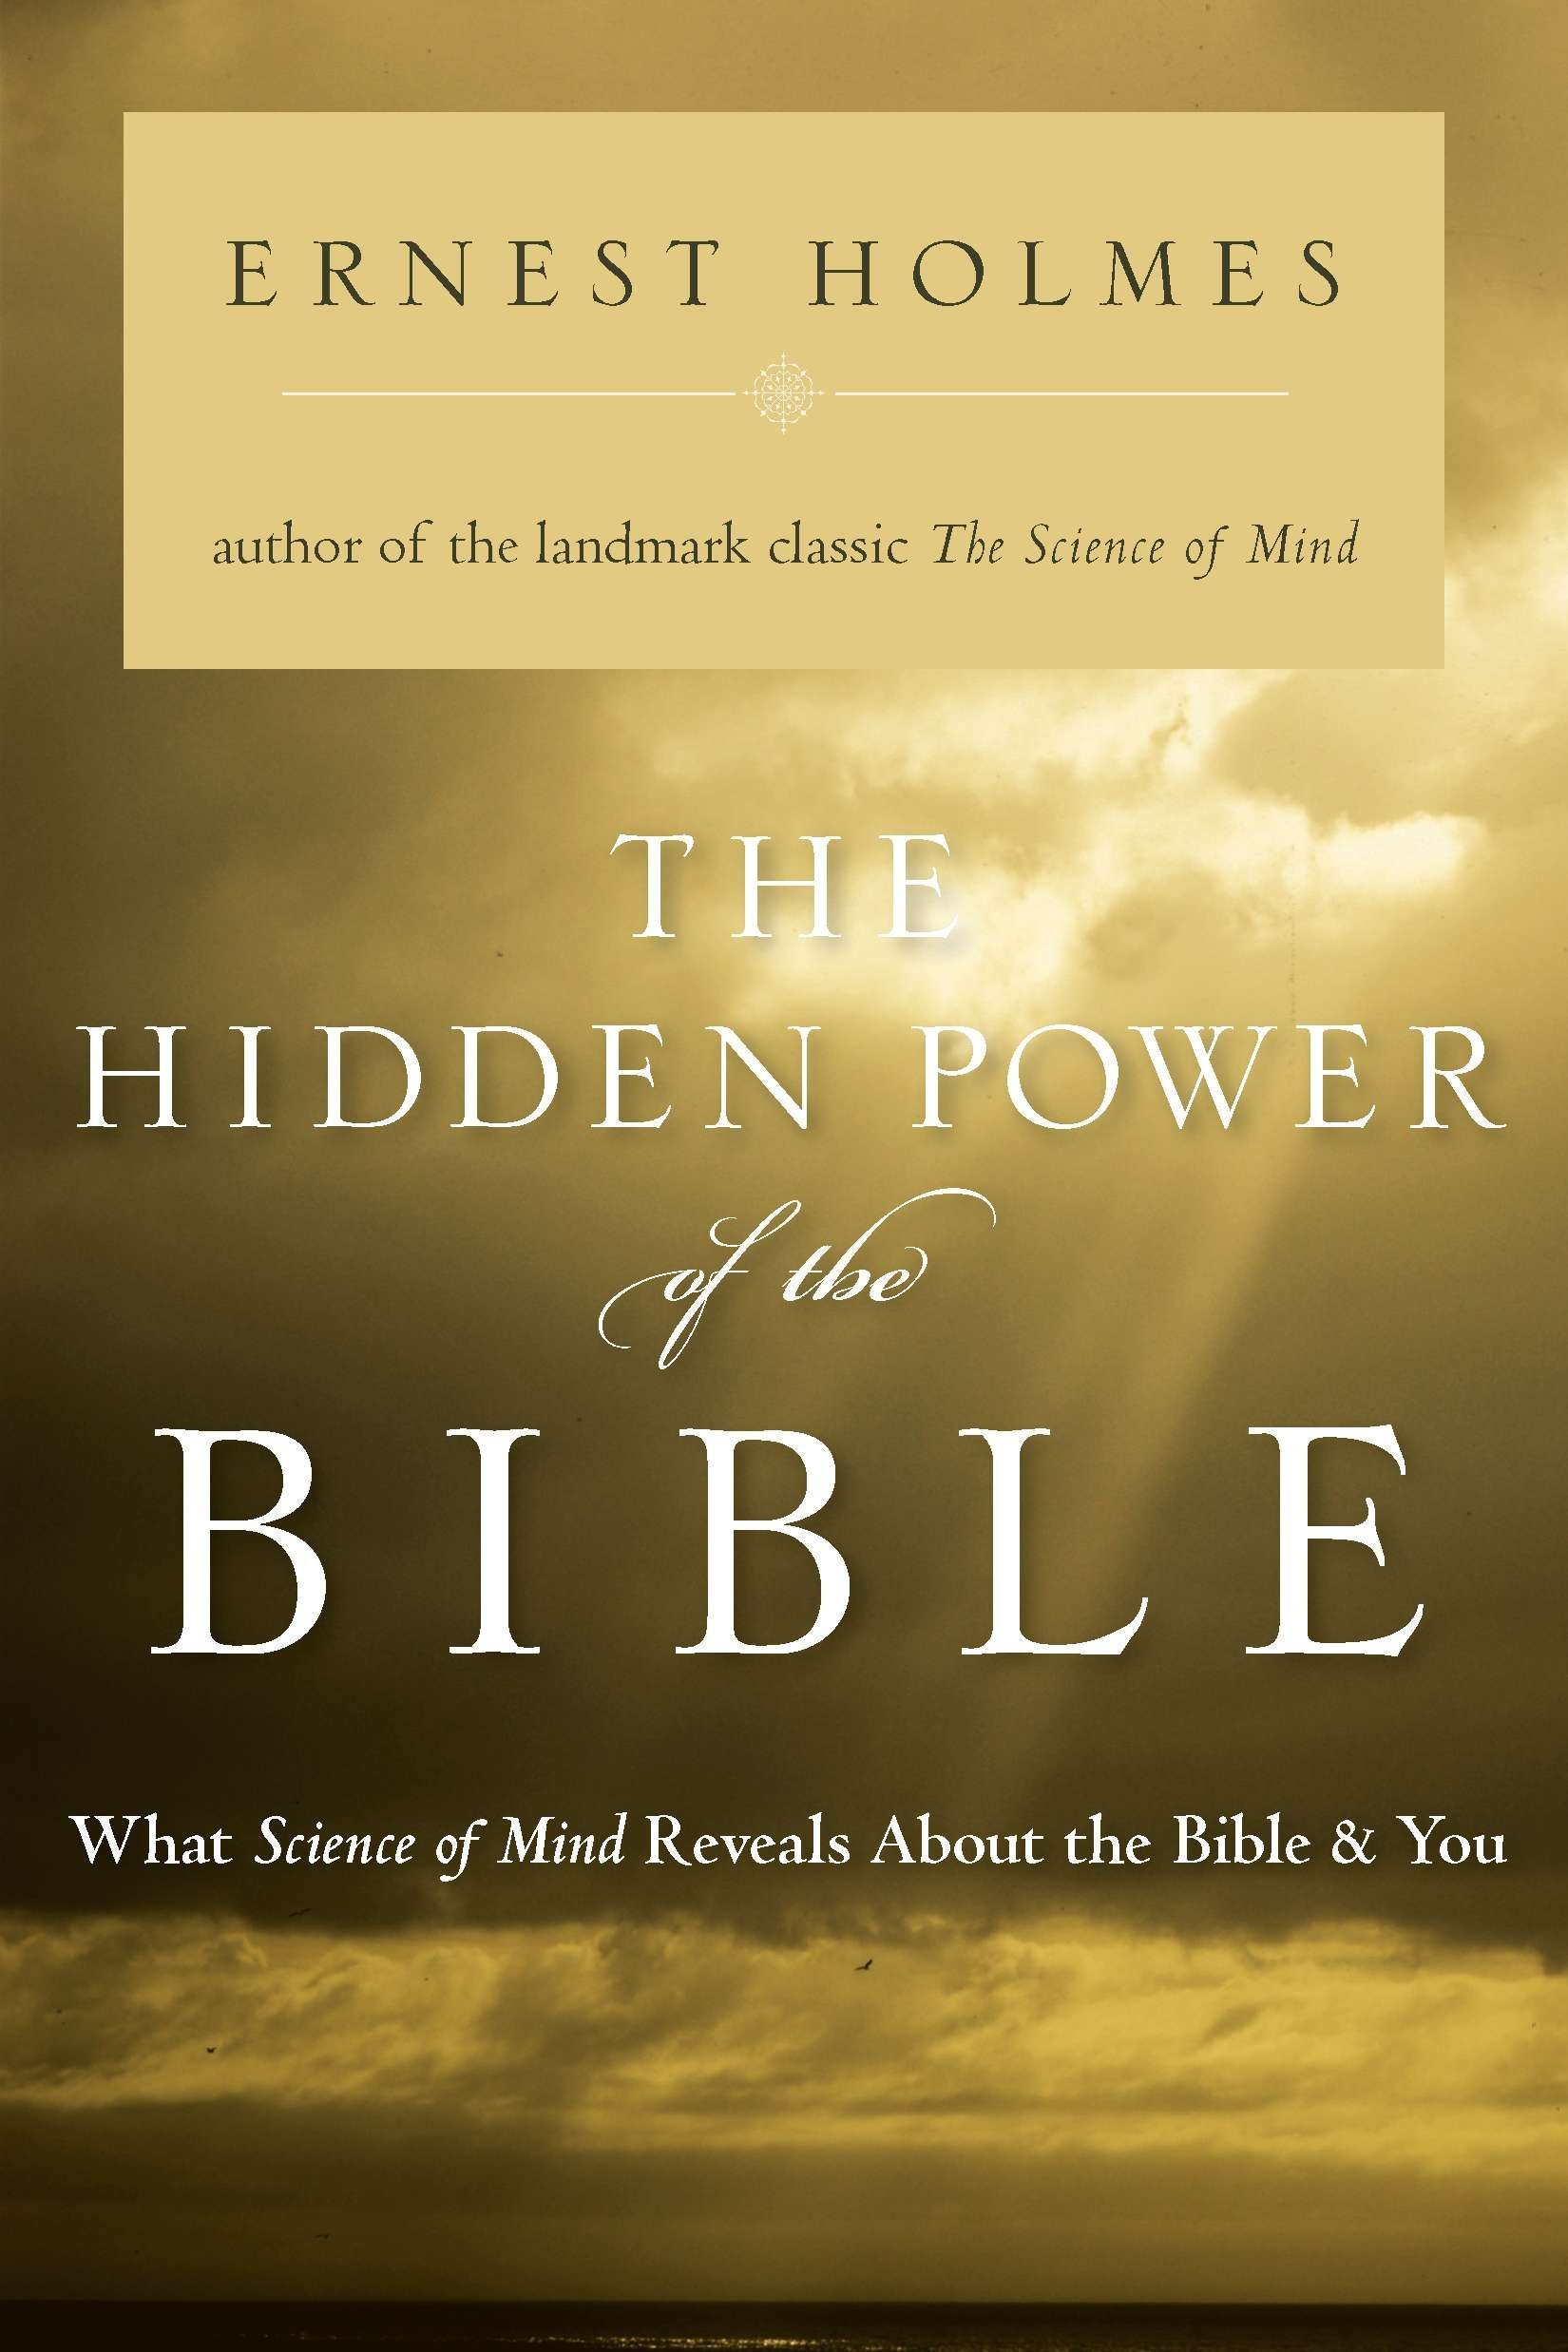 Download The Hidden Power of the Bible: What Science of Mind Reveals About the Bible & You PDF ePub fb2 book